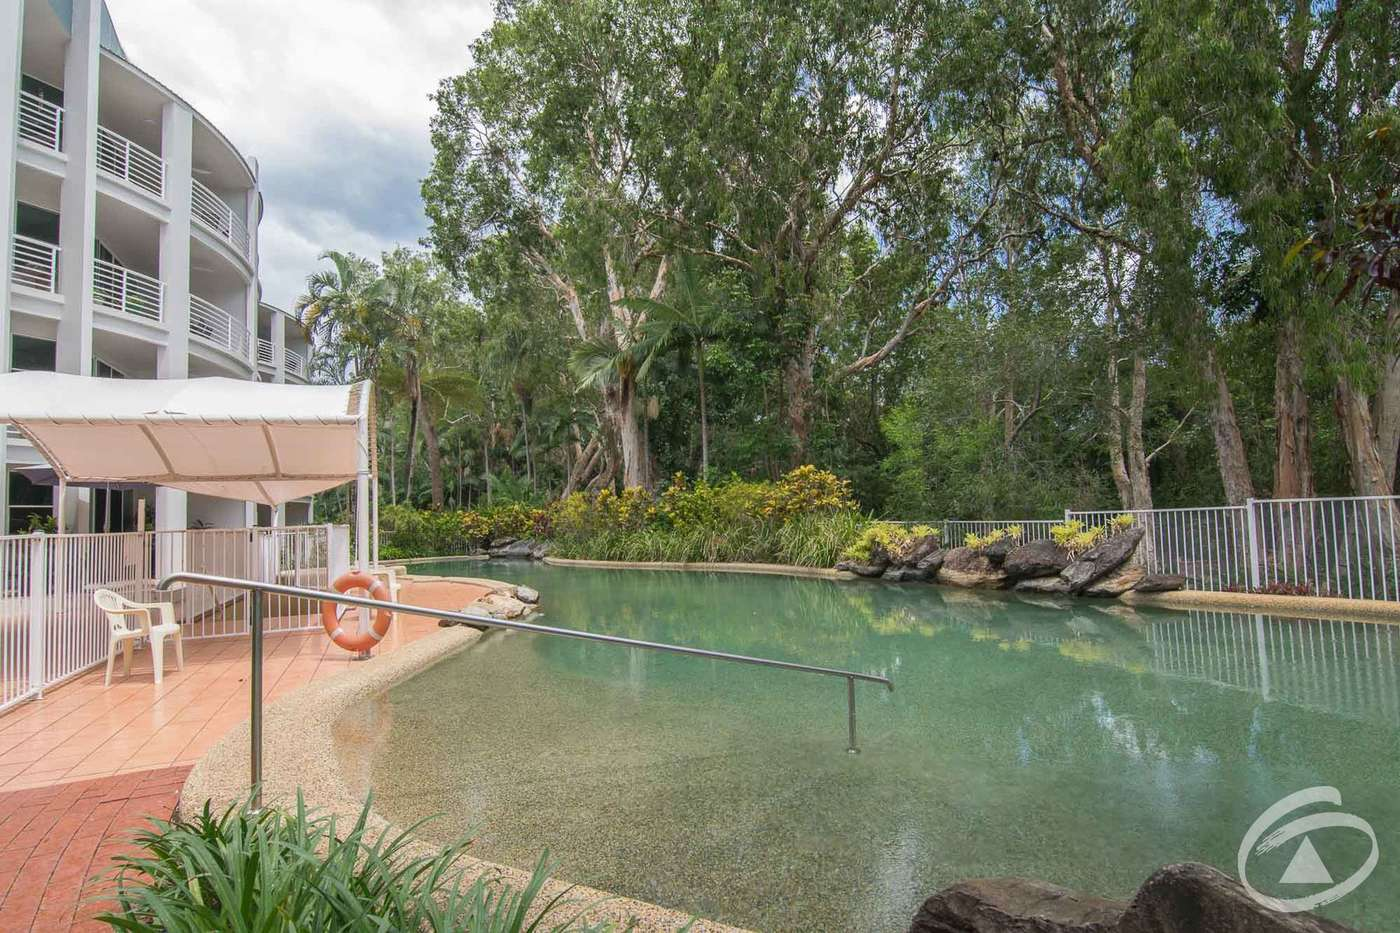 Main view of Homely unit listing, 10/2-4 Deauville Close, Yorkeys Knob, QLD 4878